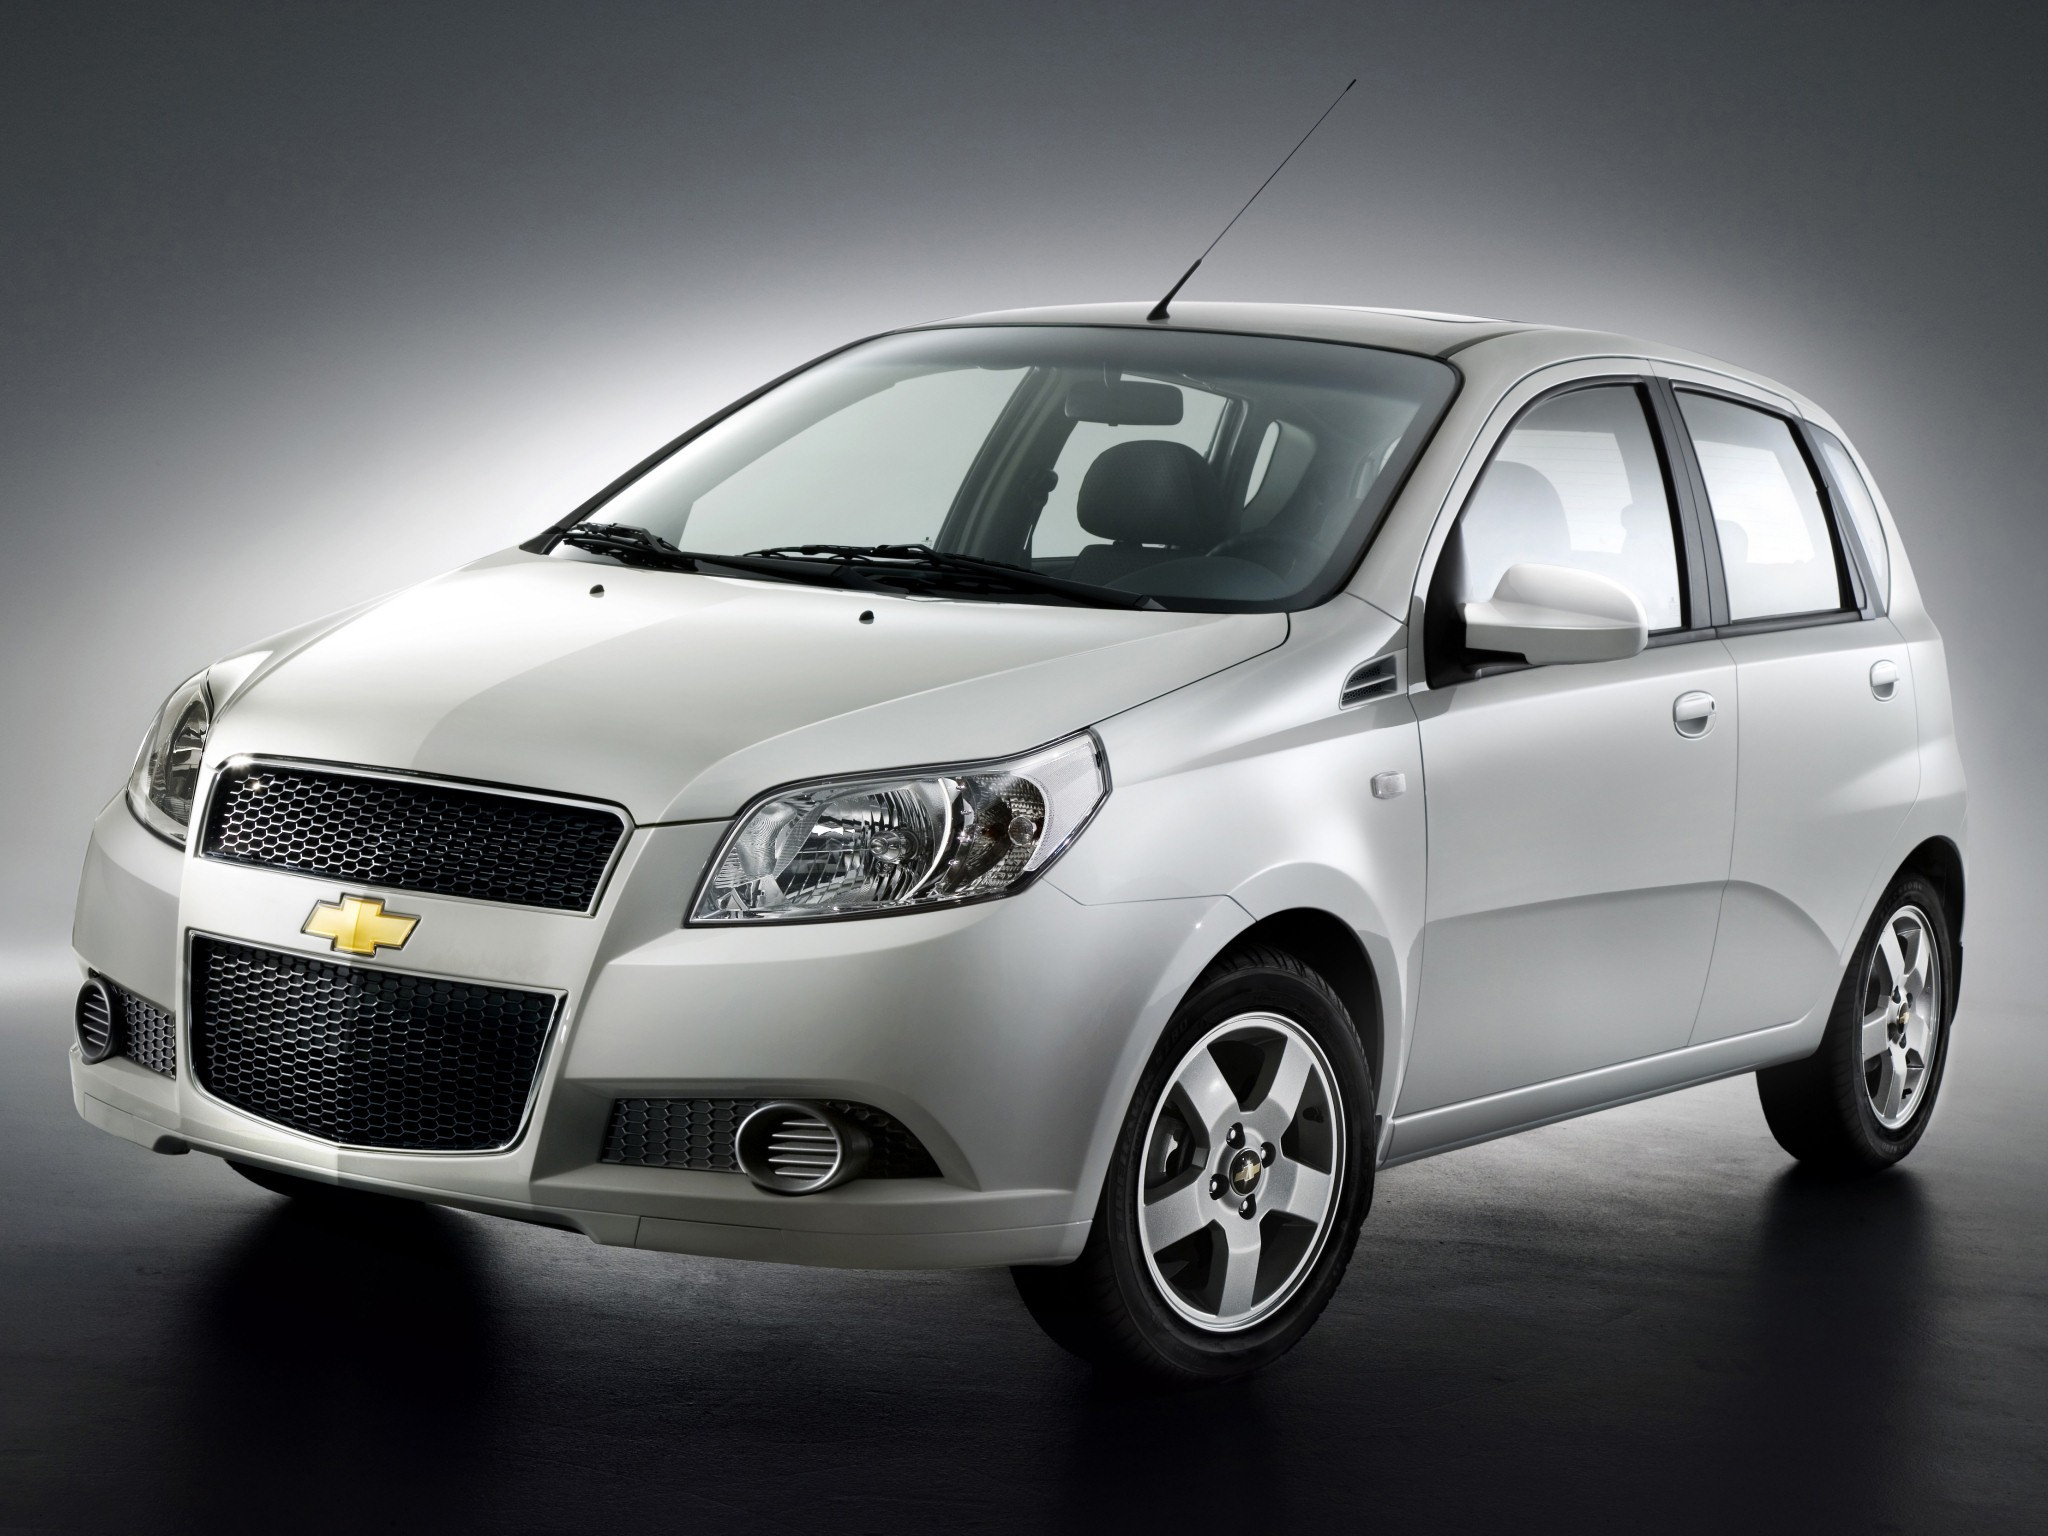 chevrolet aveo kalos 5 doors specs 2005 2006 2007. Black Bedroom Furniture Sets. Home Design Ideas